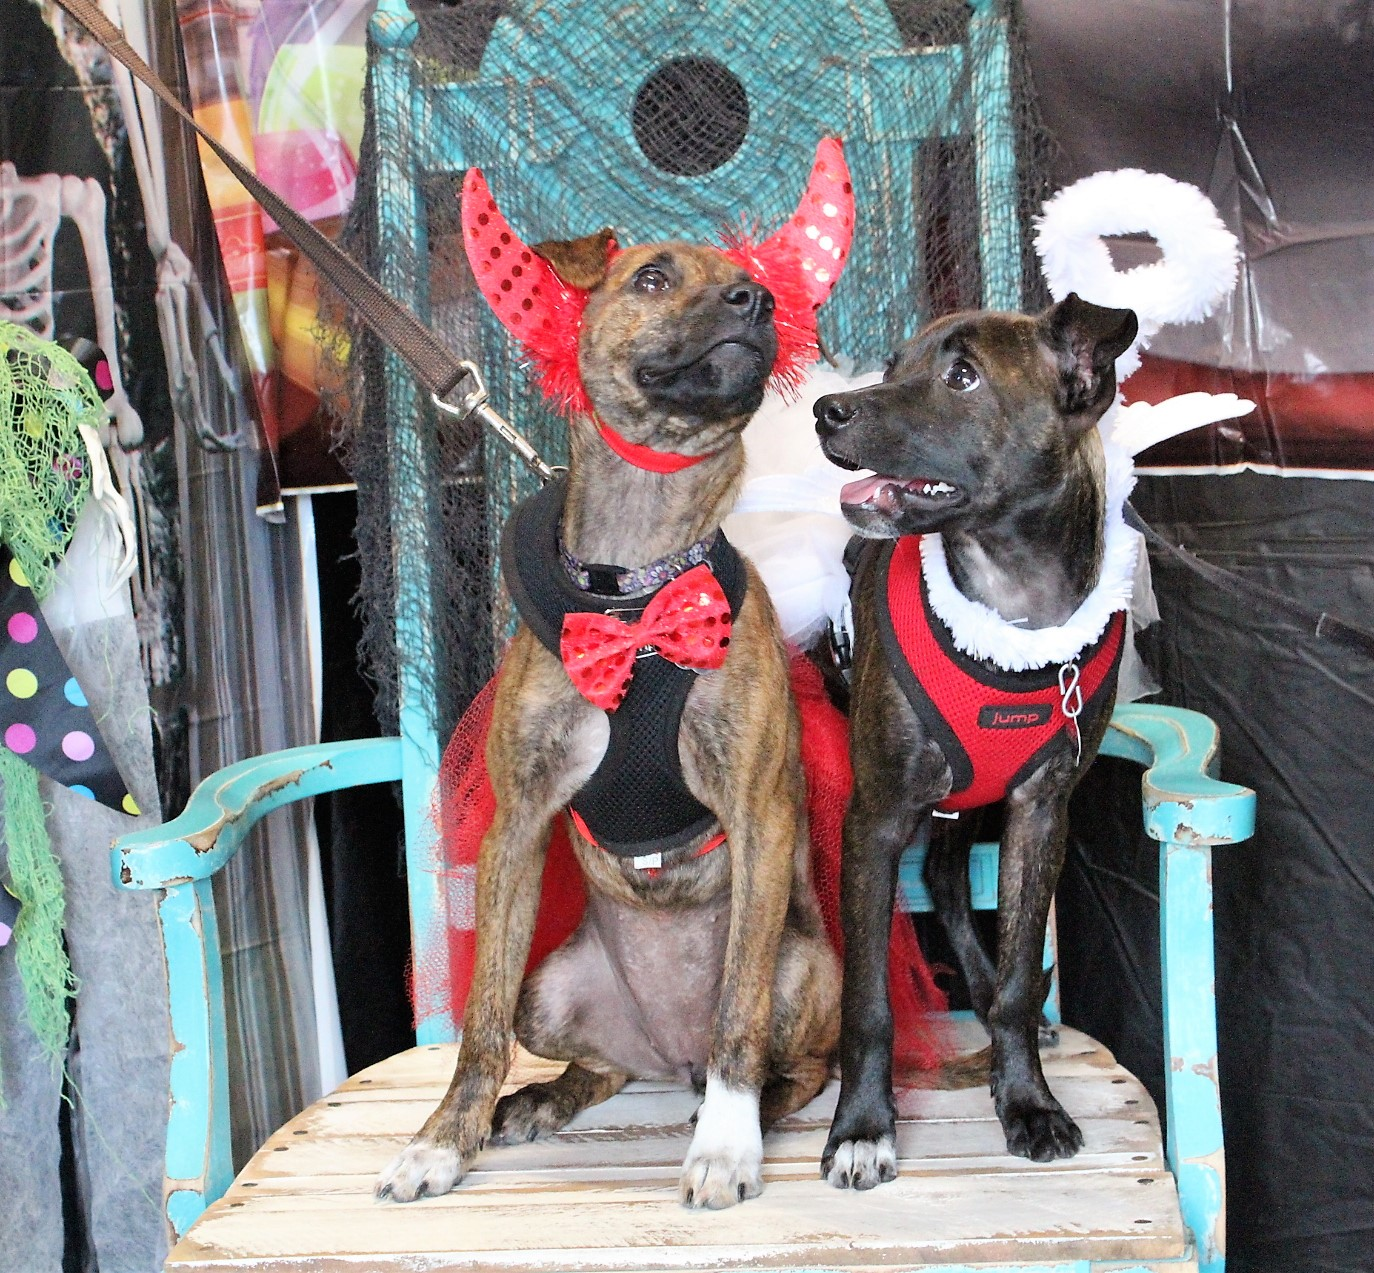 Two dogs in halloween costumes posing for a picture in a large blue chair